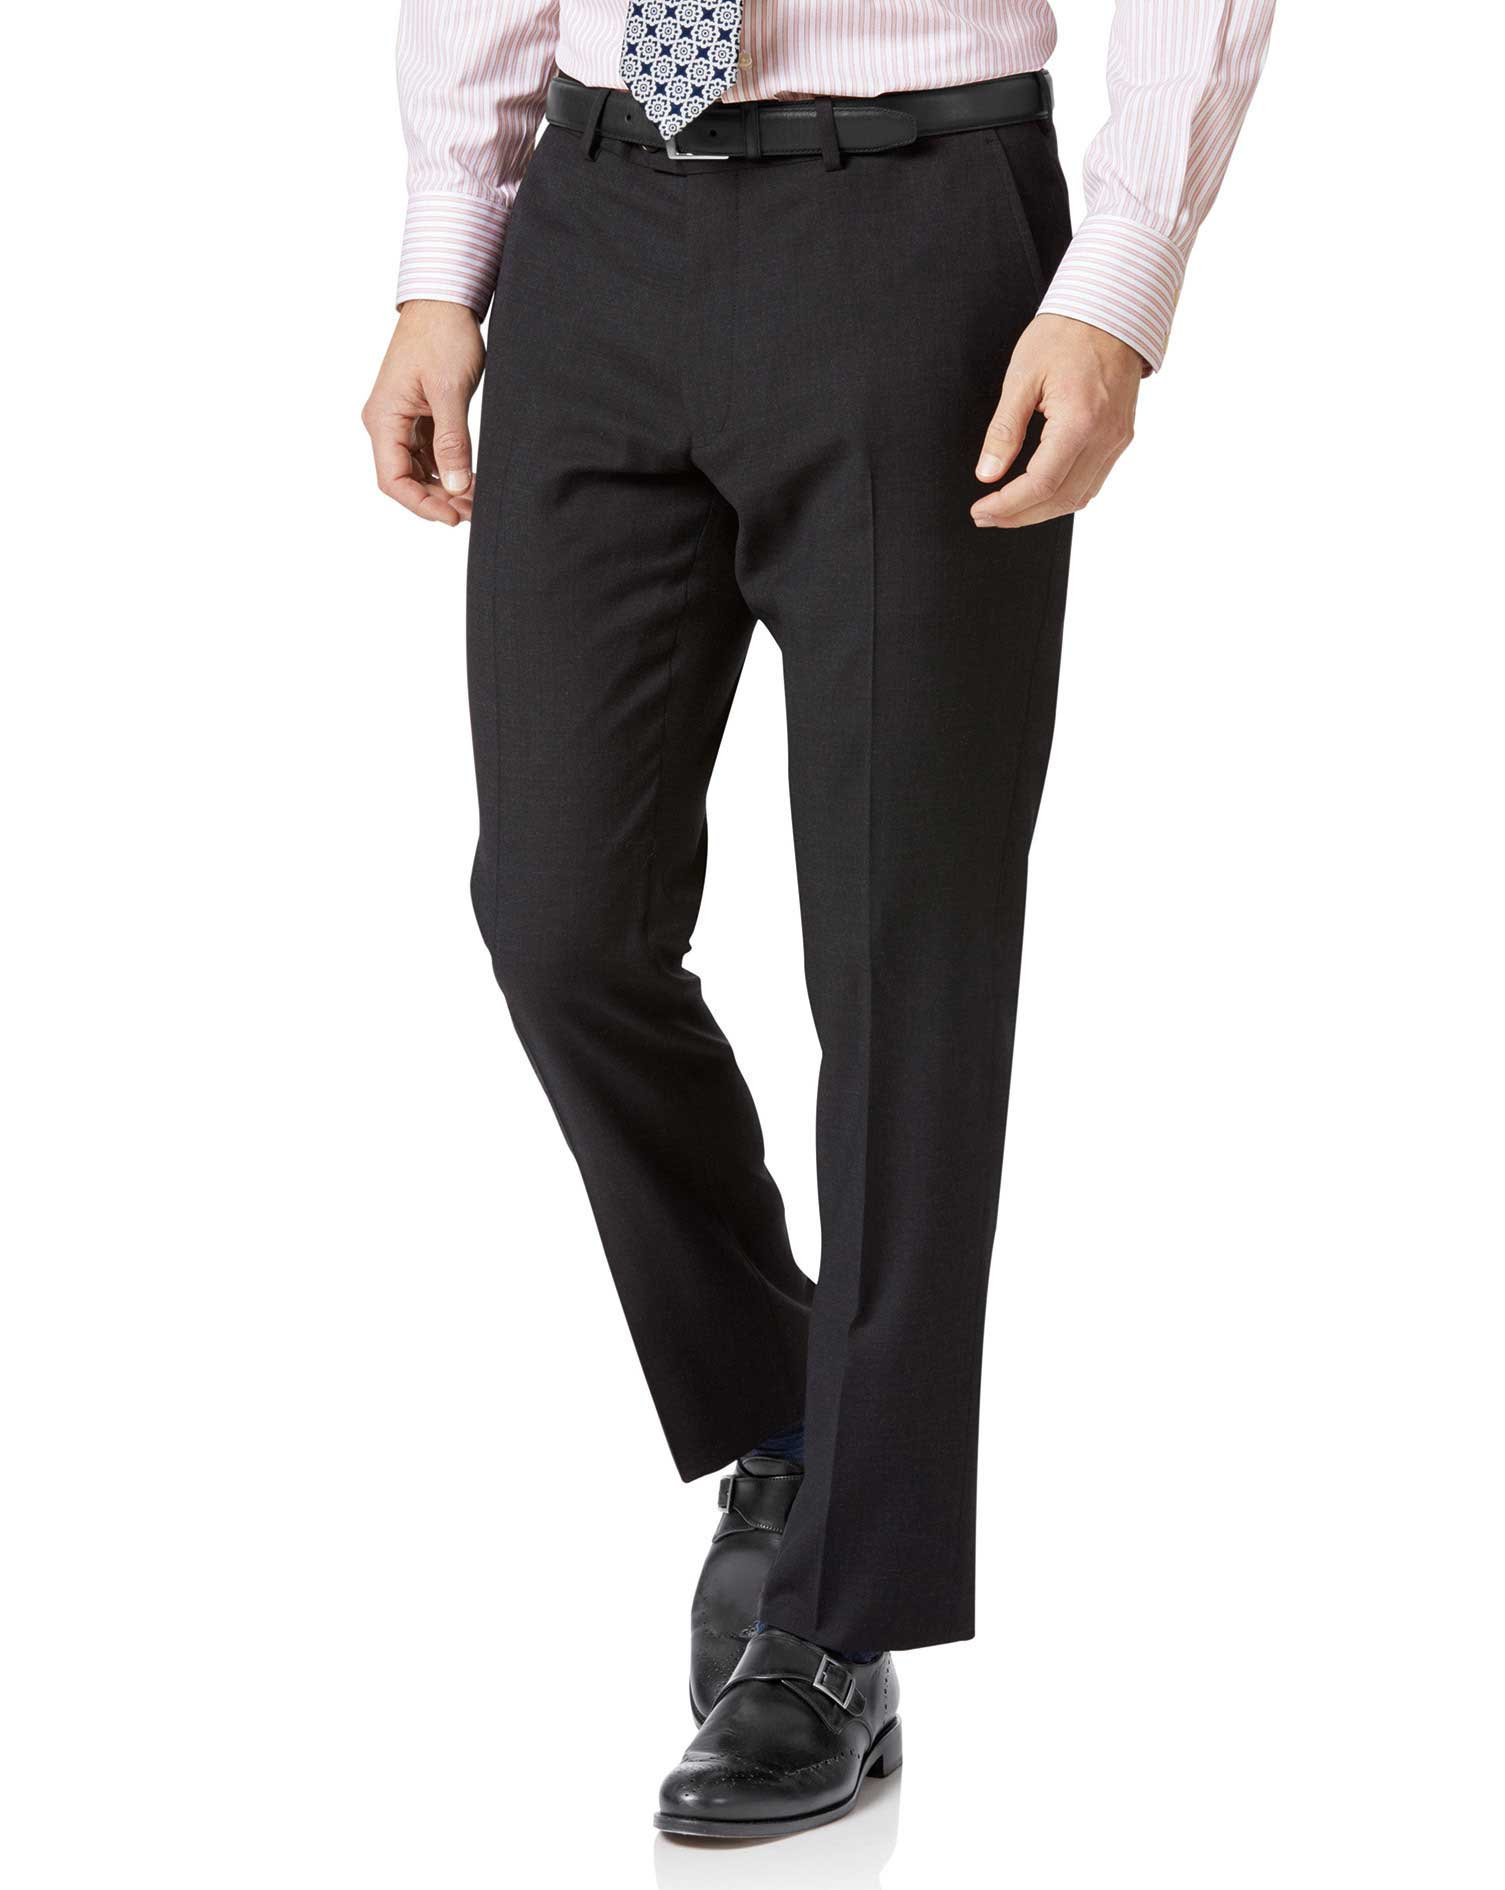 Charcoal Slim Fit Twill Business Suit Trousers Size W30 L38 by Charles Tyrwhitt